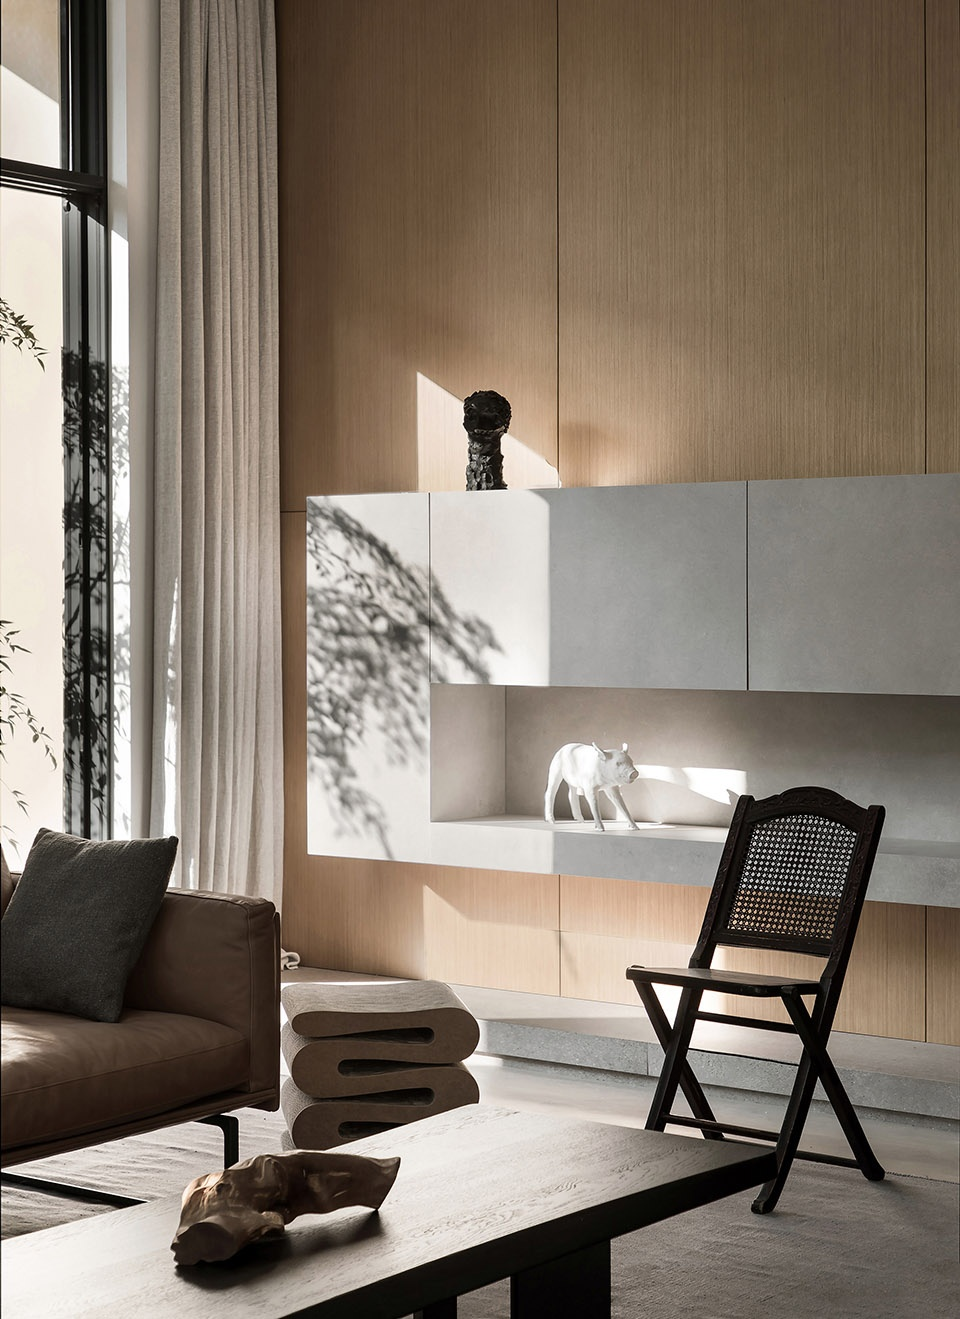 013-a-desired-home-china-by-liang-architecture-studio-960x1319.jpg